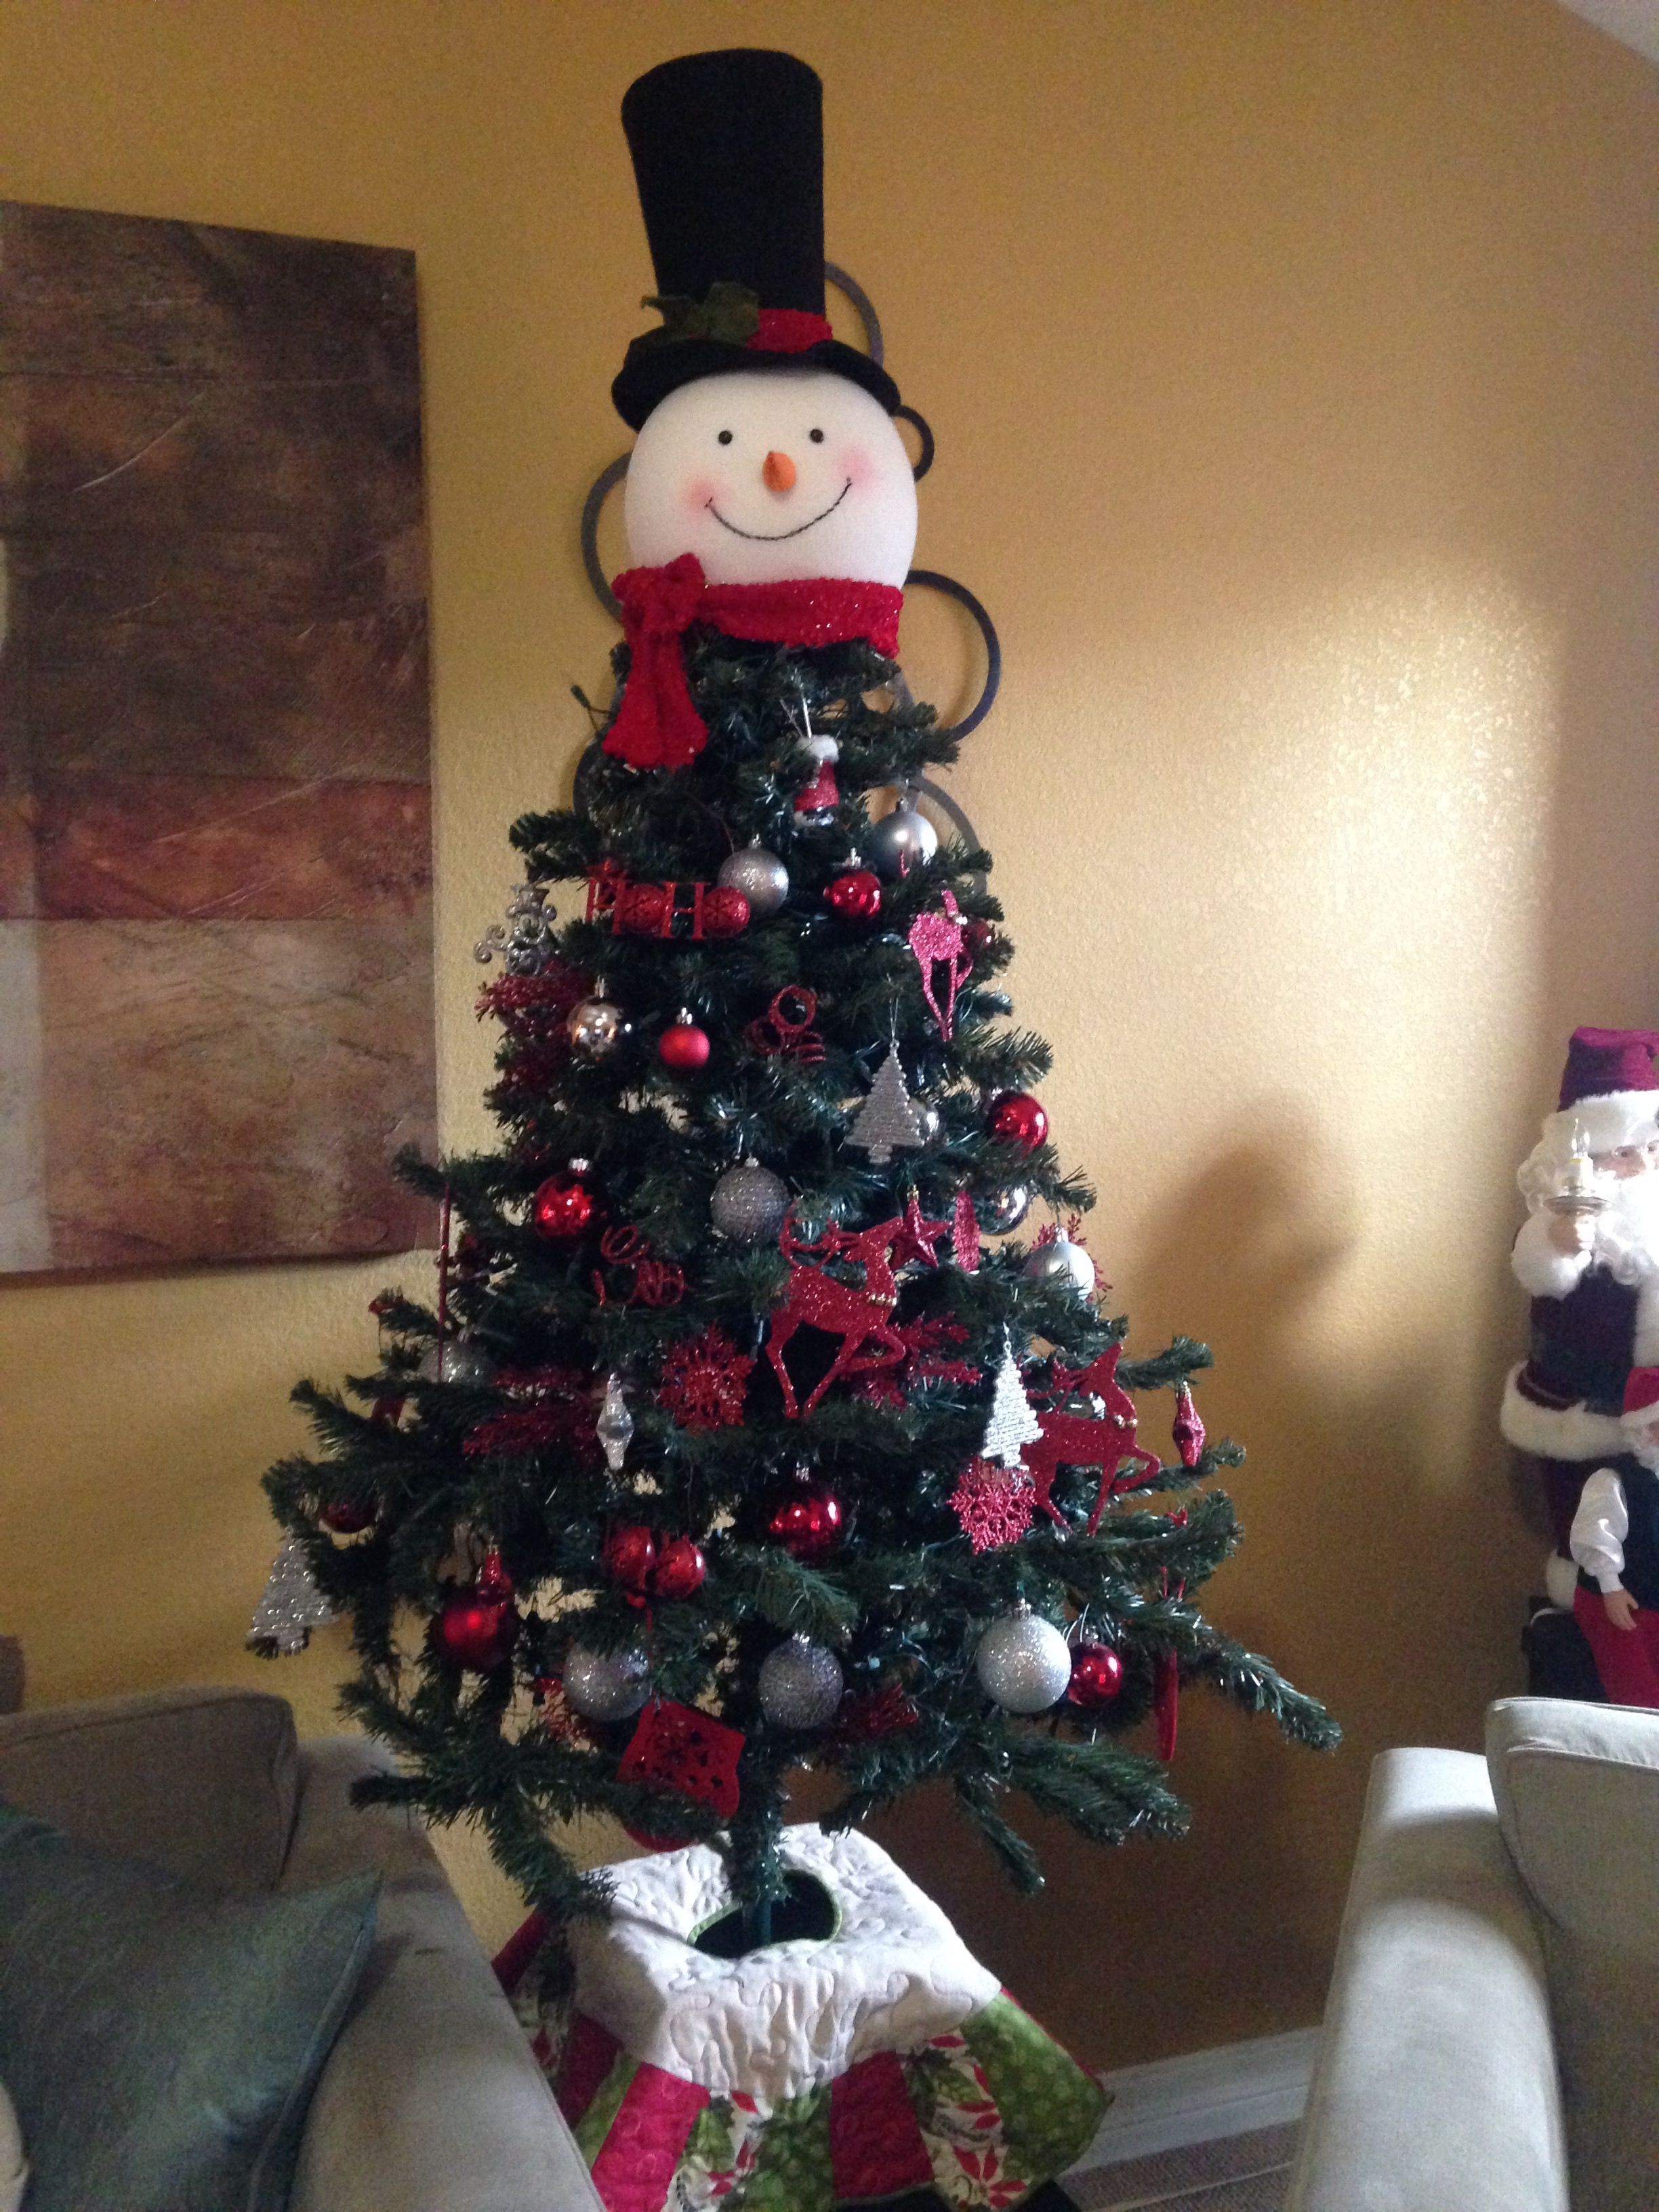 My Newest Tree Topper From Home Depot Christmas Tree Toppers Tree Toppers Snowman Tree